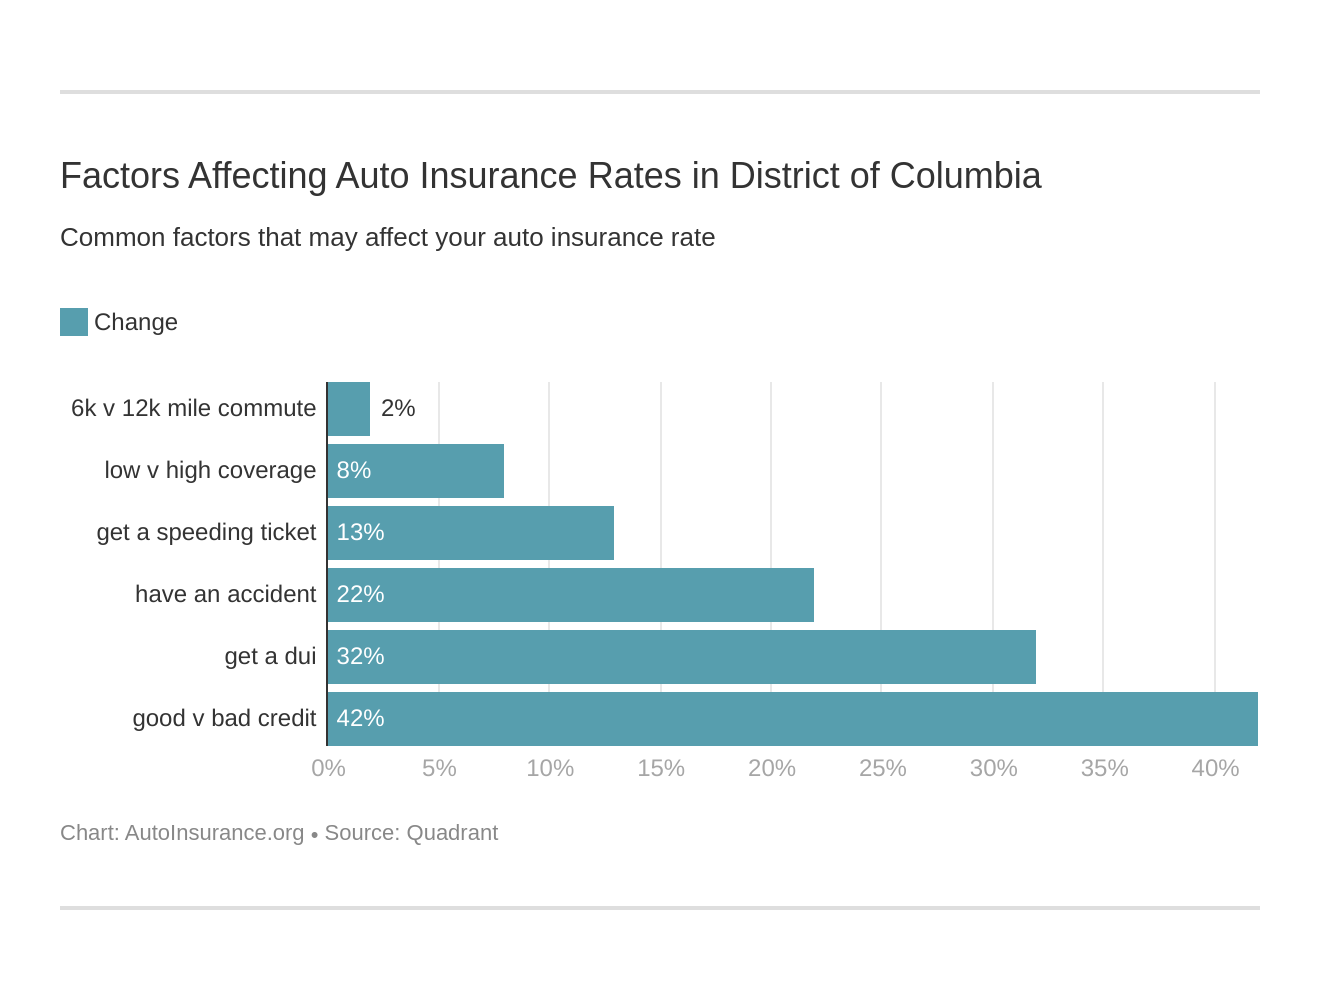 Factors Affecting Auto Insurance Rates in District of Columbia